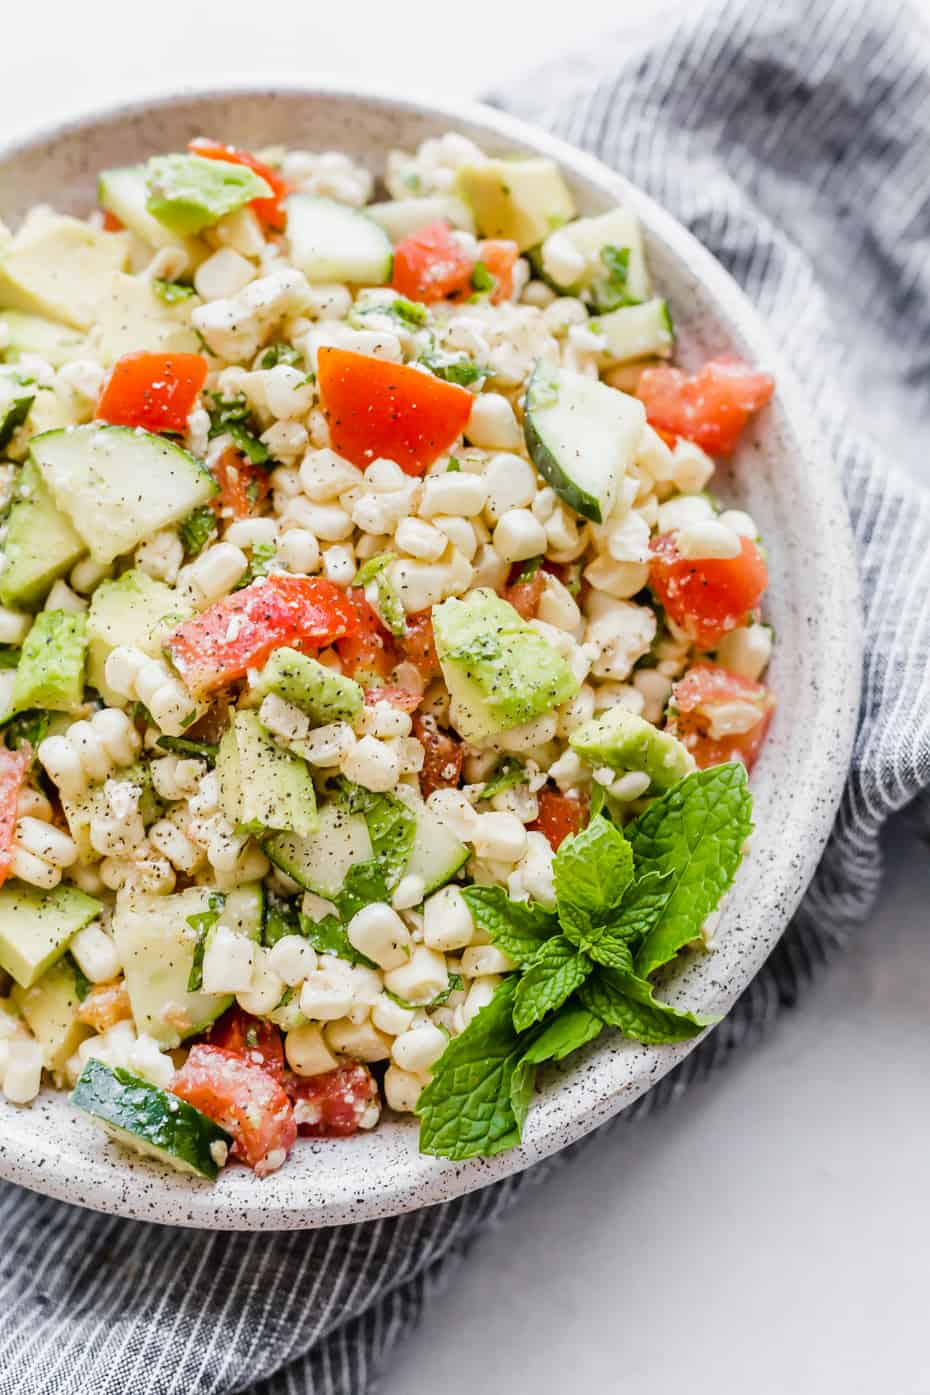 Close up image of a feta corn salad with chopped tomatoes, cucumber, corn, mint, and avocado.